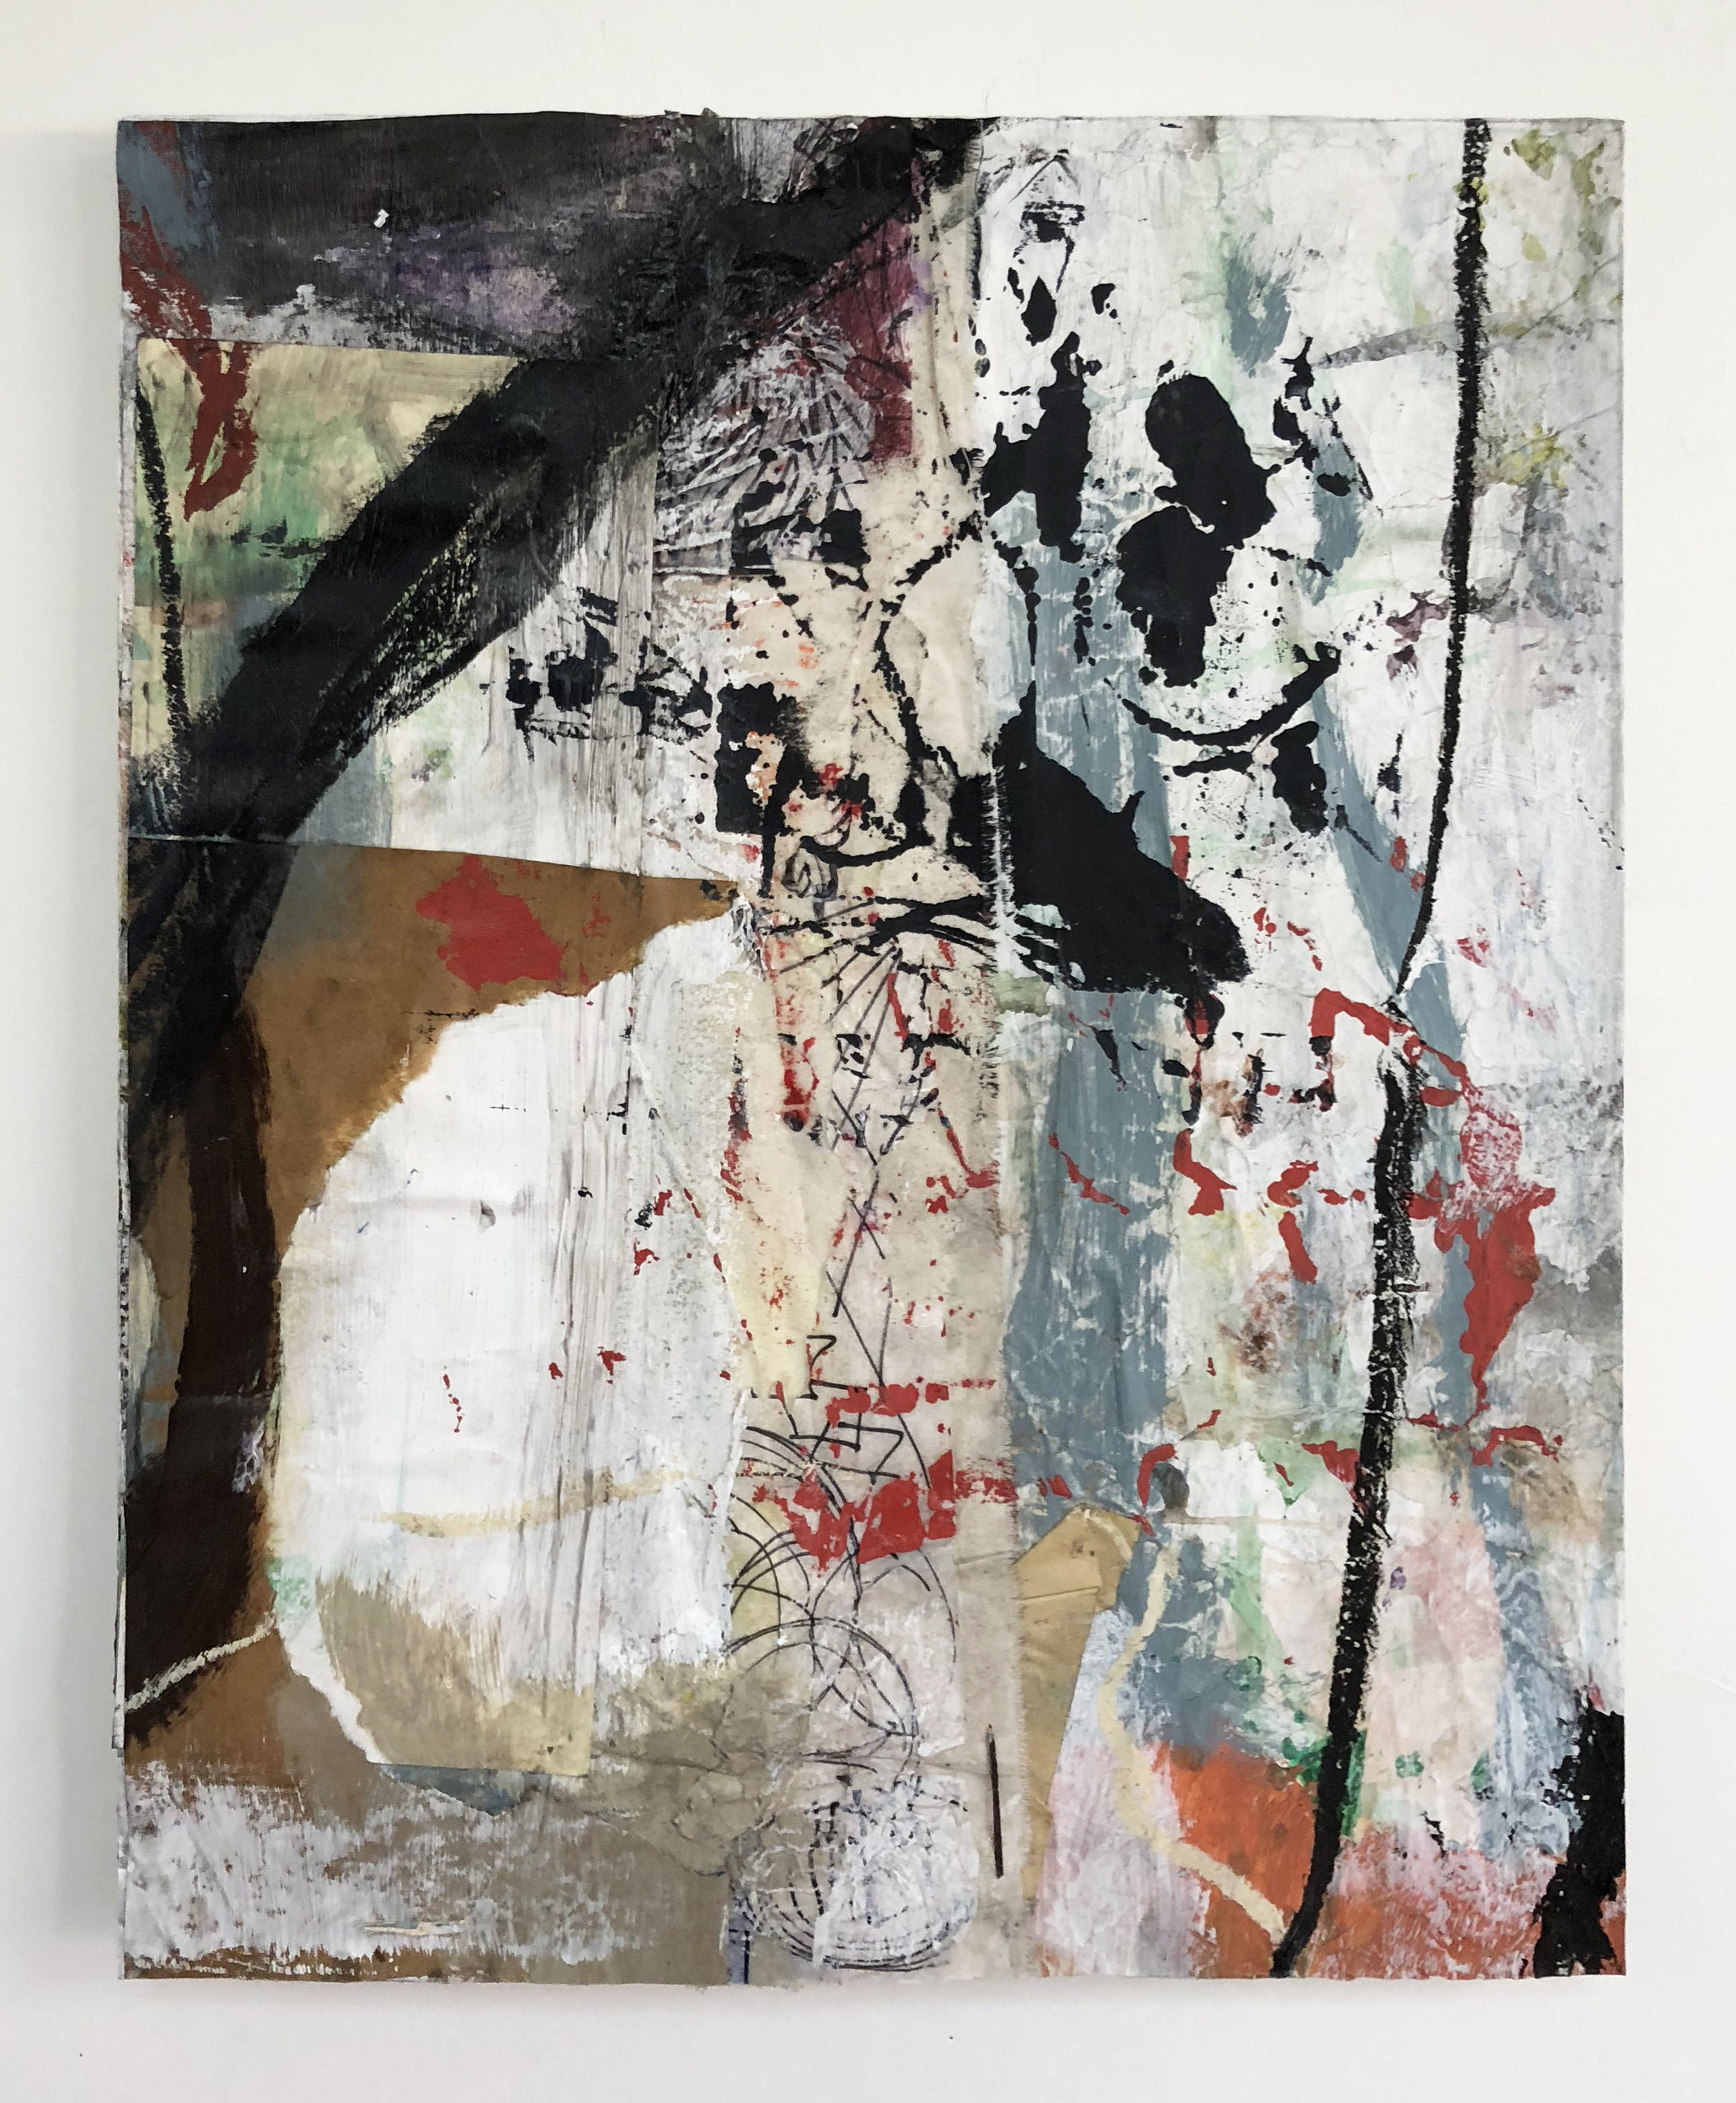 Layered & Fast Pacing Memories,  2016-18, Collage, charcoal, acrylic, oil, ink, serigraphy, canvas on panel